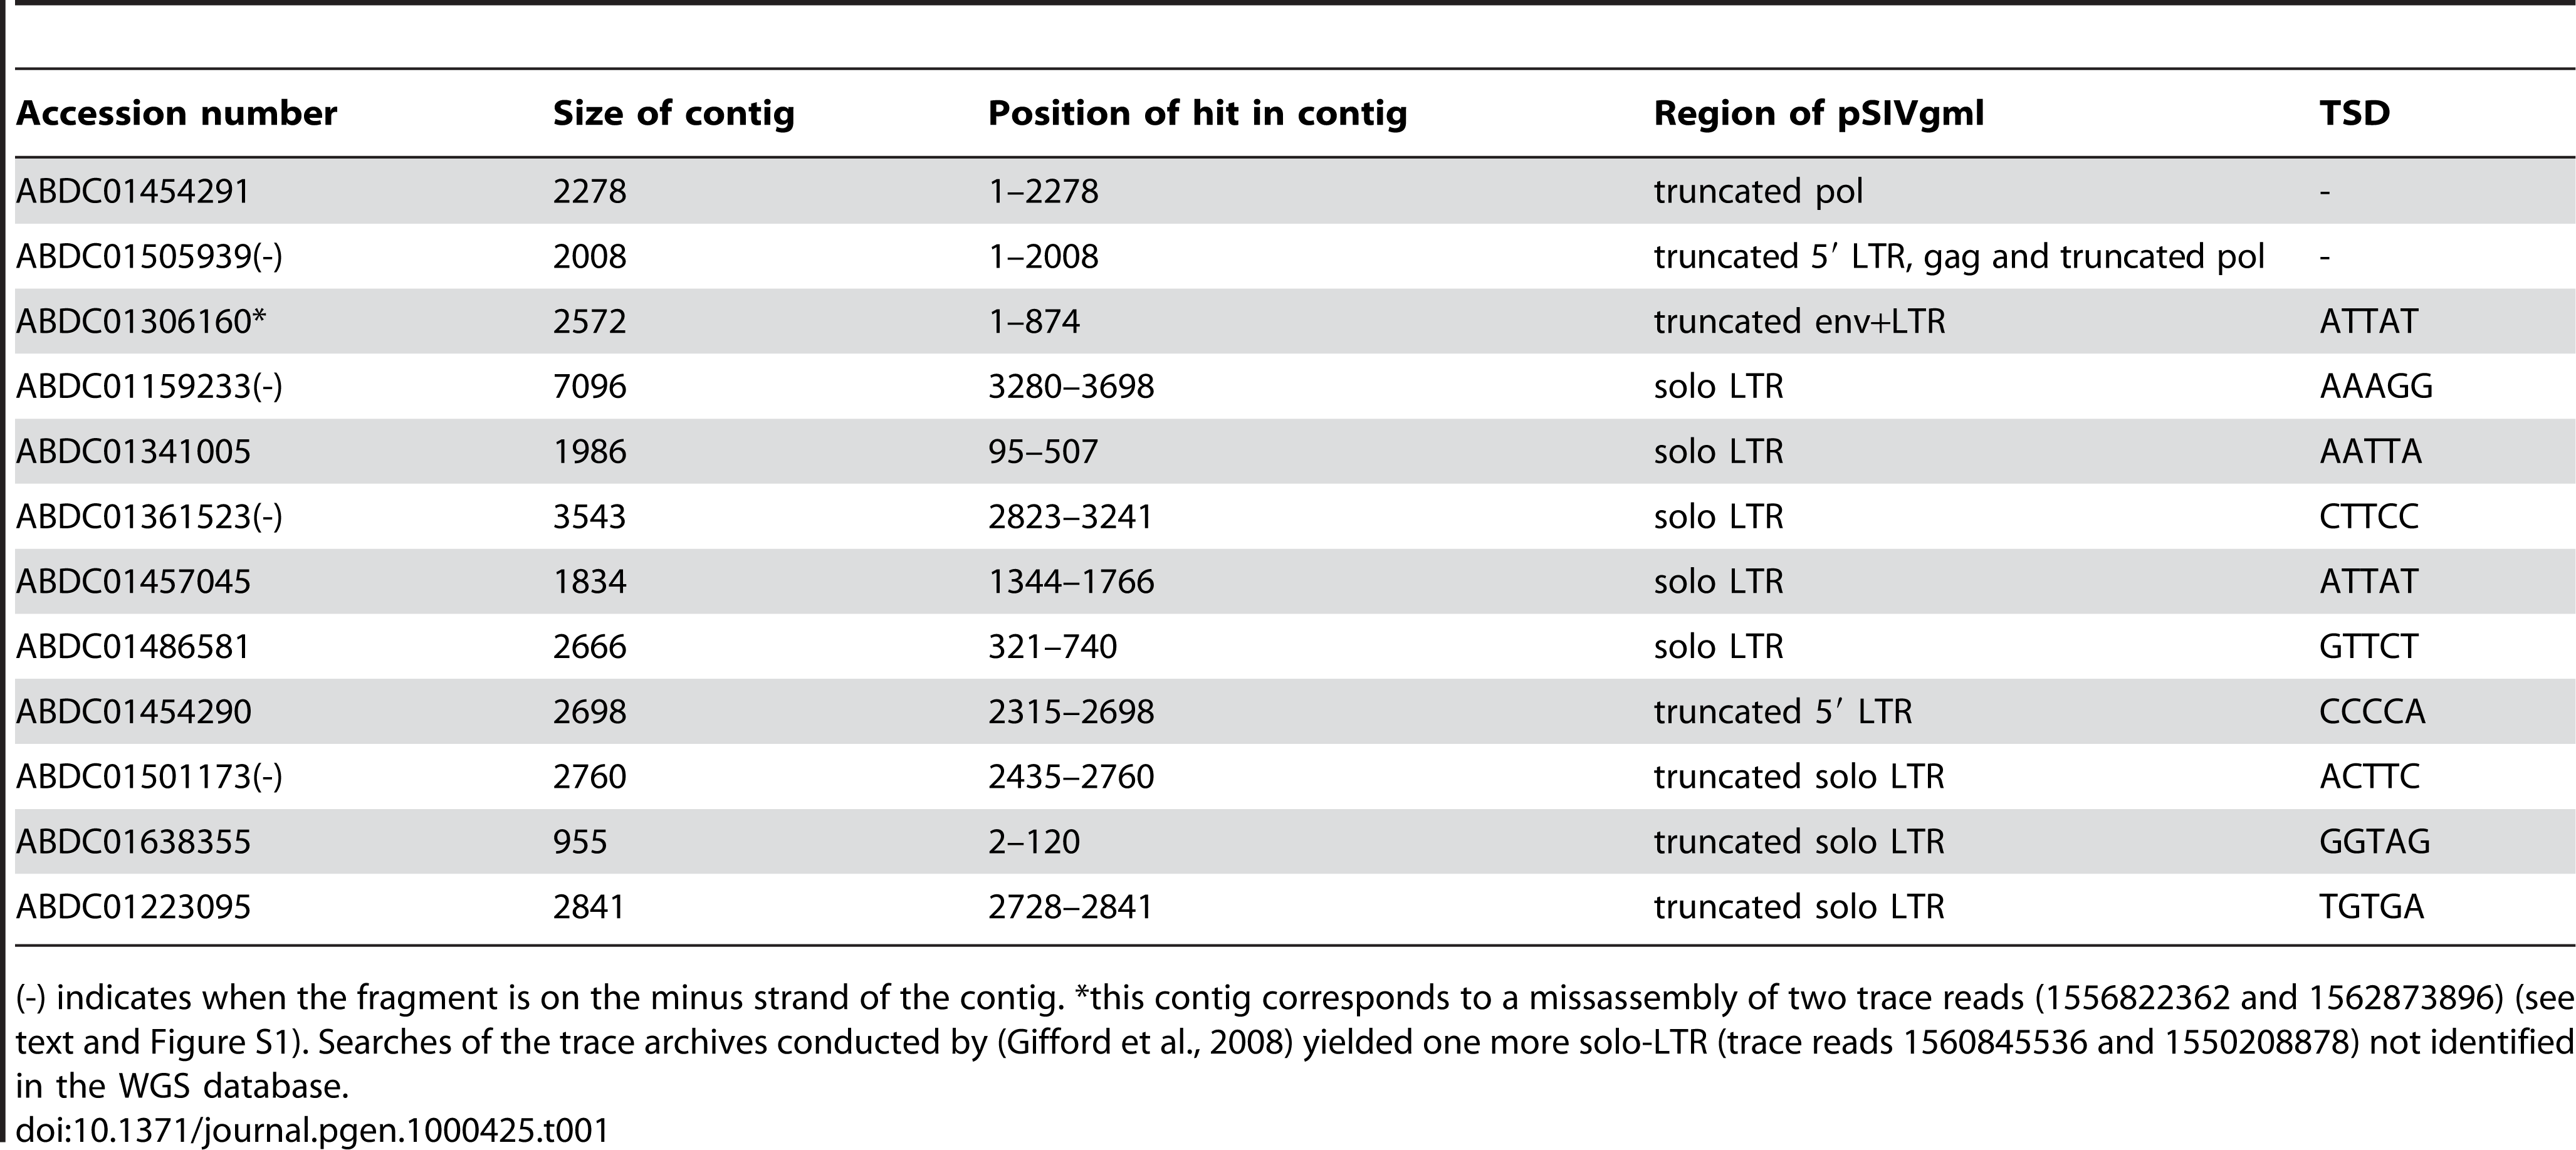 Summary of all the fragments of pSIVgml found in the whole genome shotgun sequence database of the gray mouse lemur, <i>Microcebus murinus</i> (1.93× coverage).